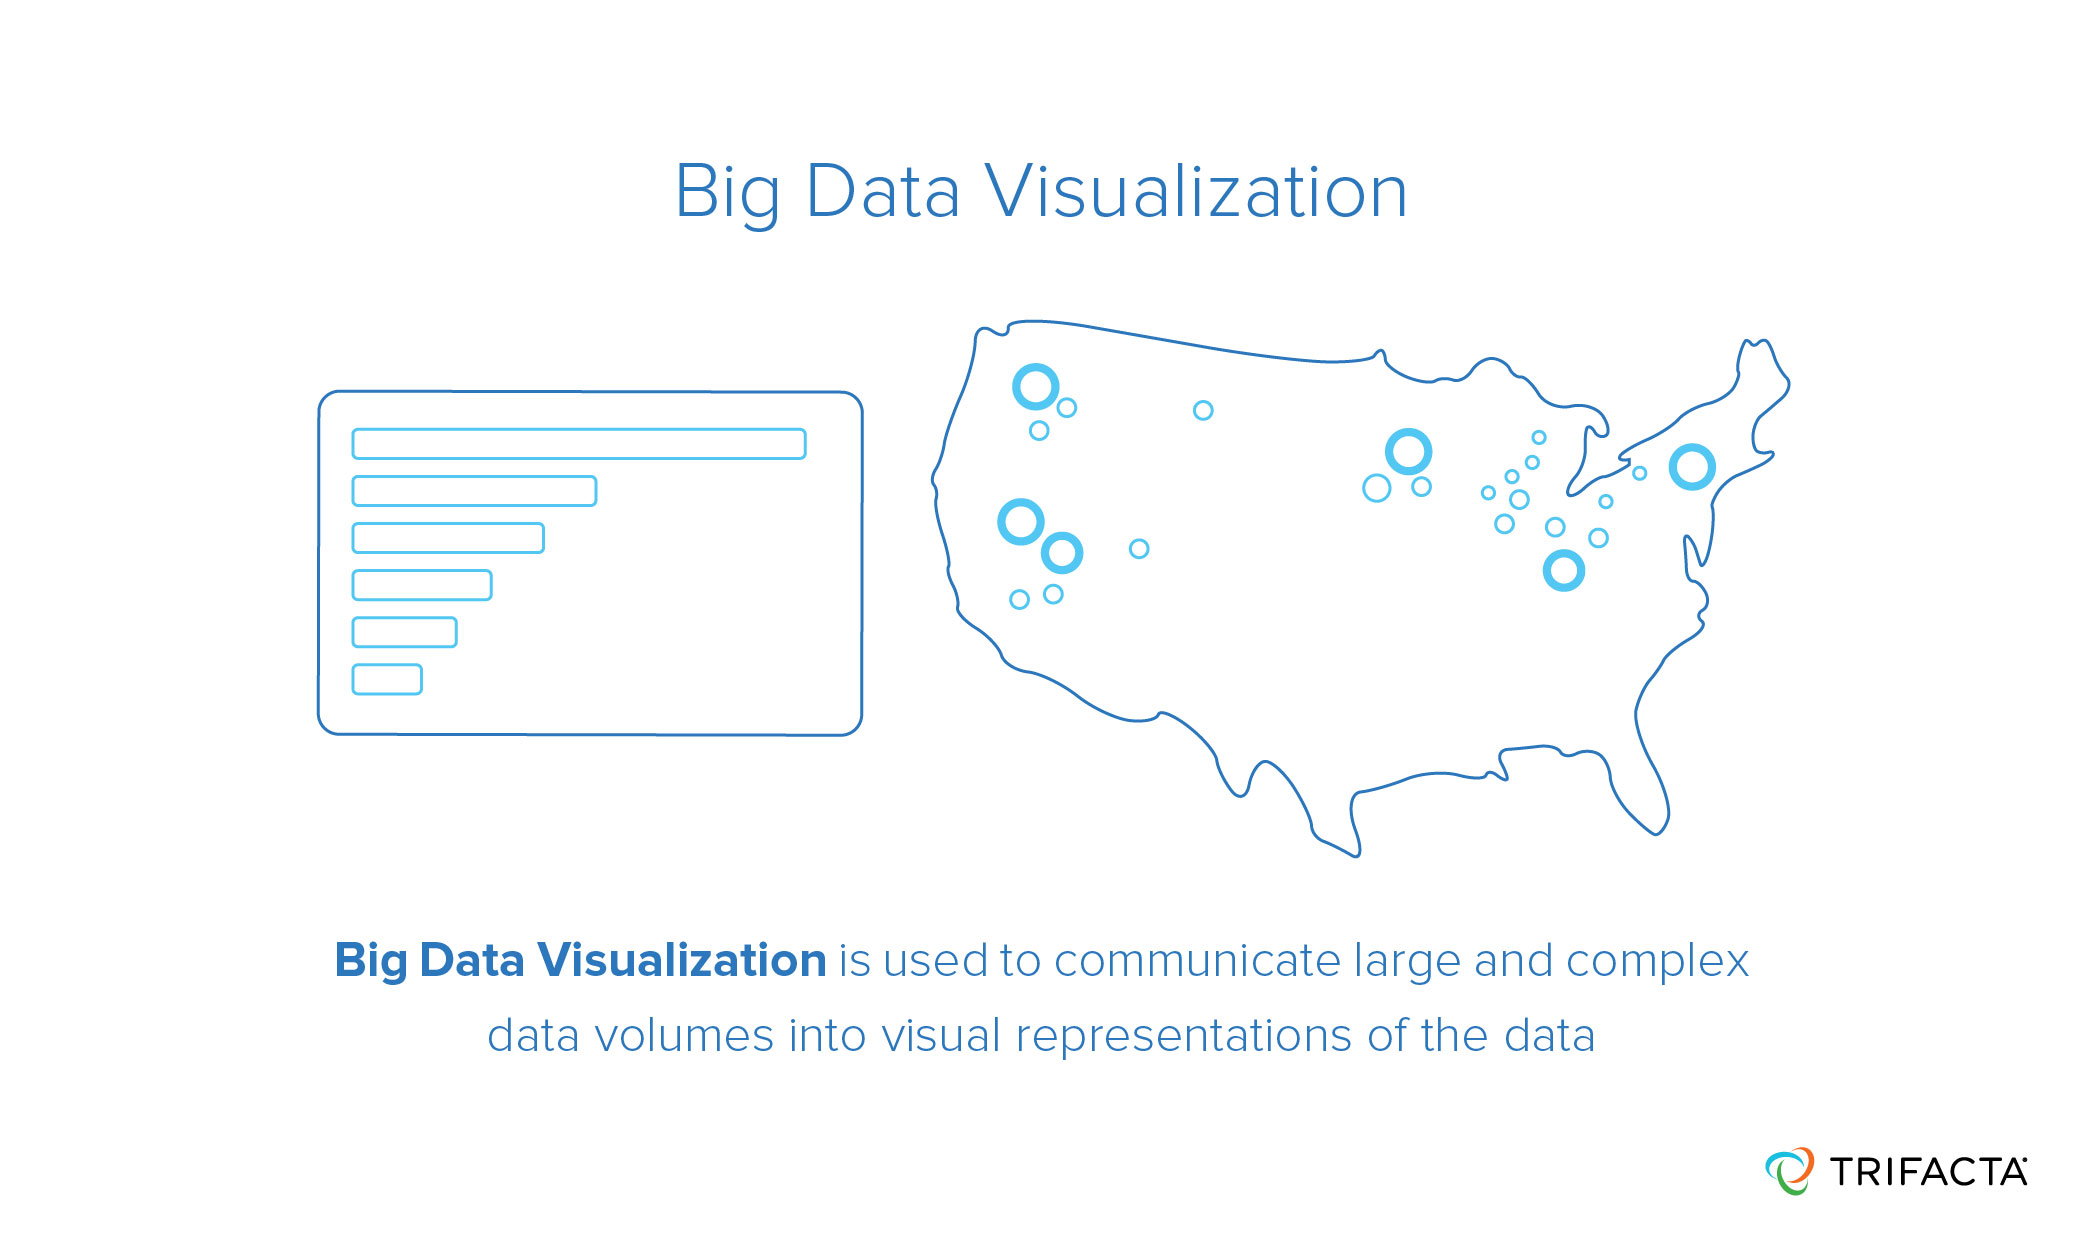 Big data visualization communicates large and complex data into visual representations of the data